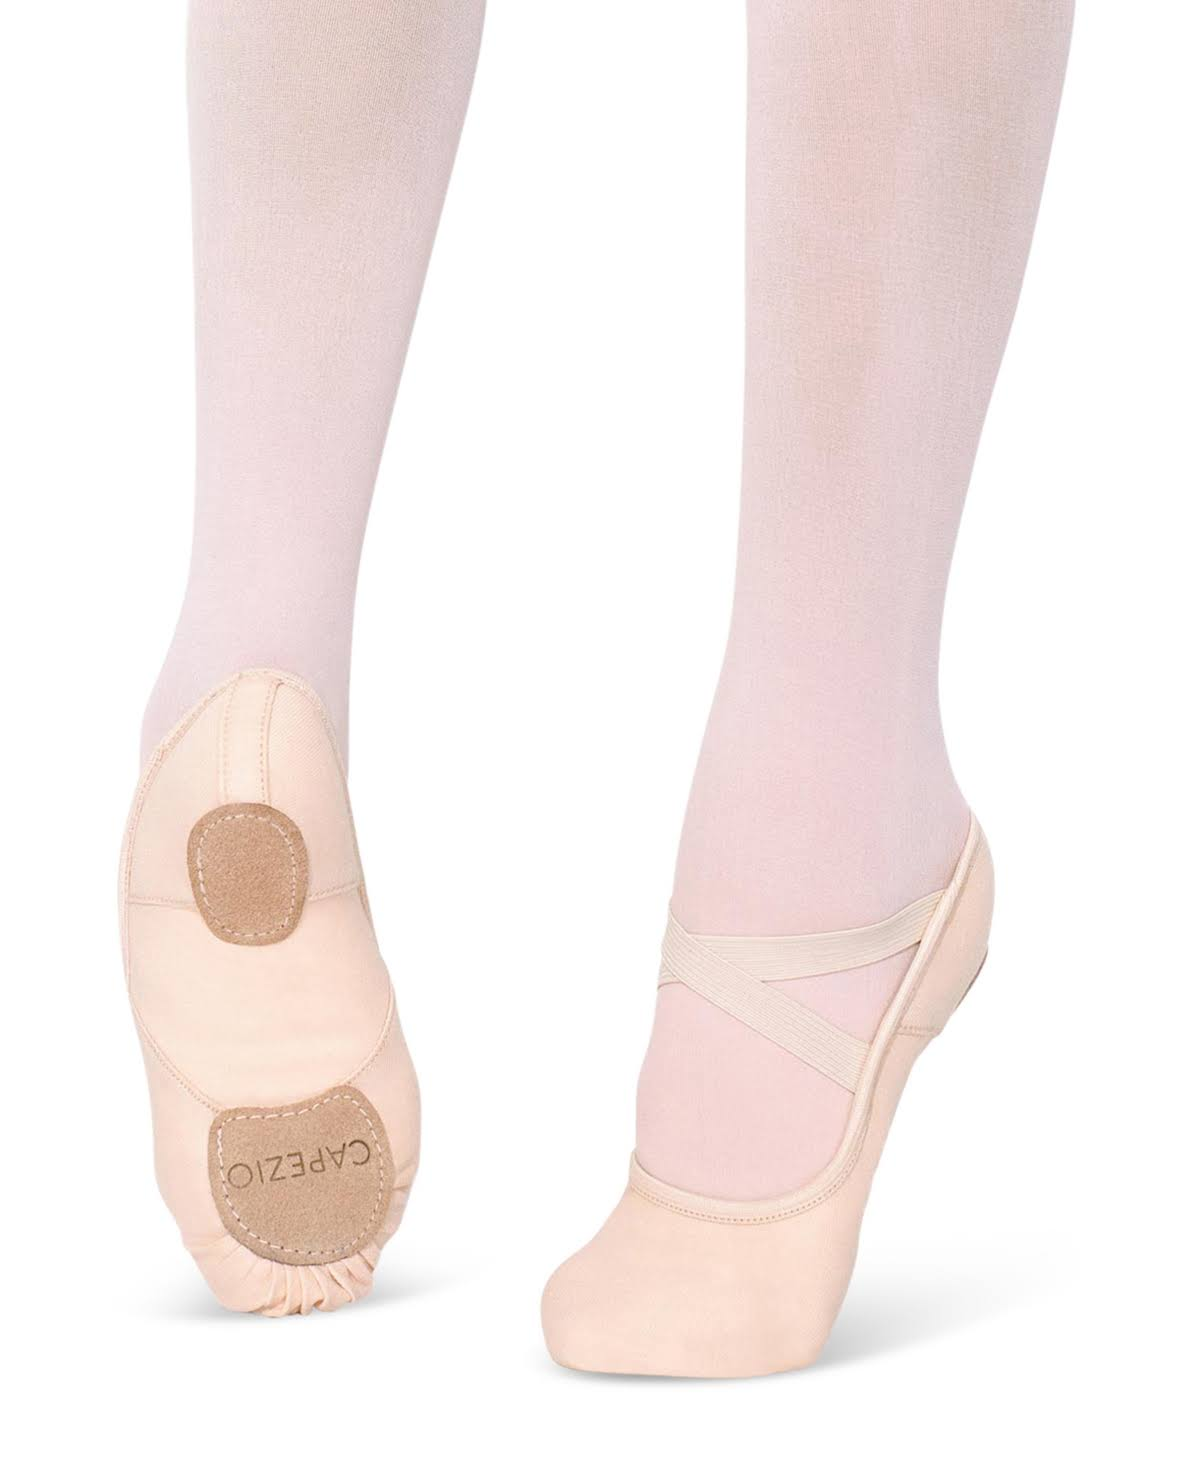 Capezio Women's Hanami Ballet ShoeS - Light Pink, 10.5